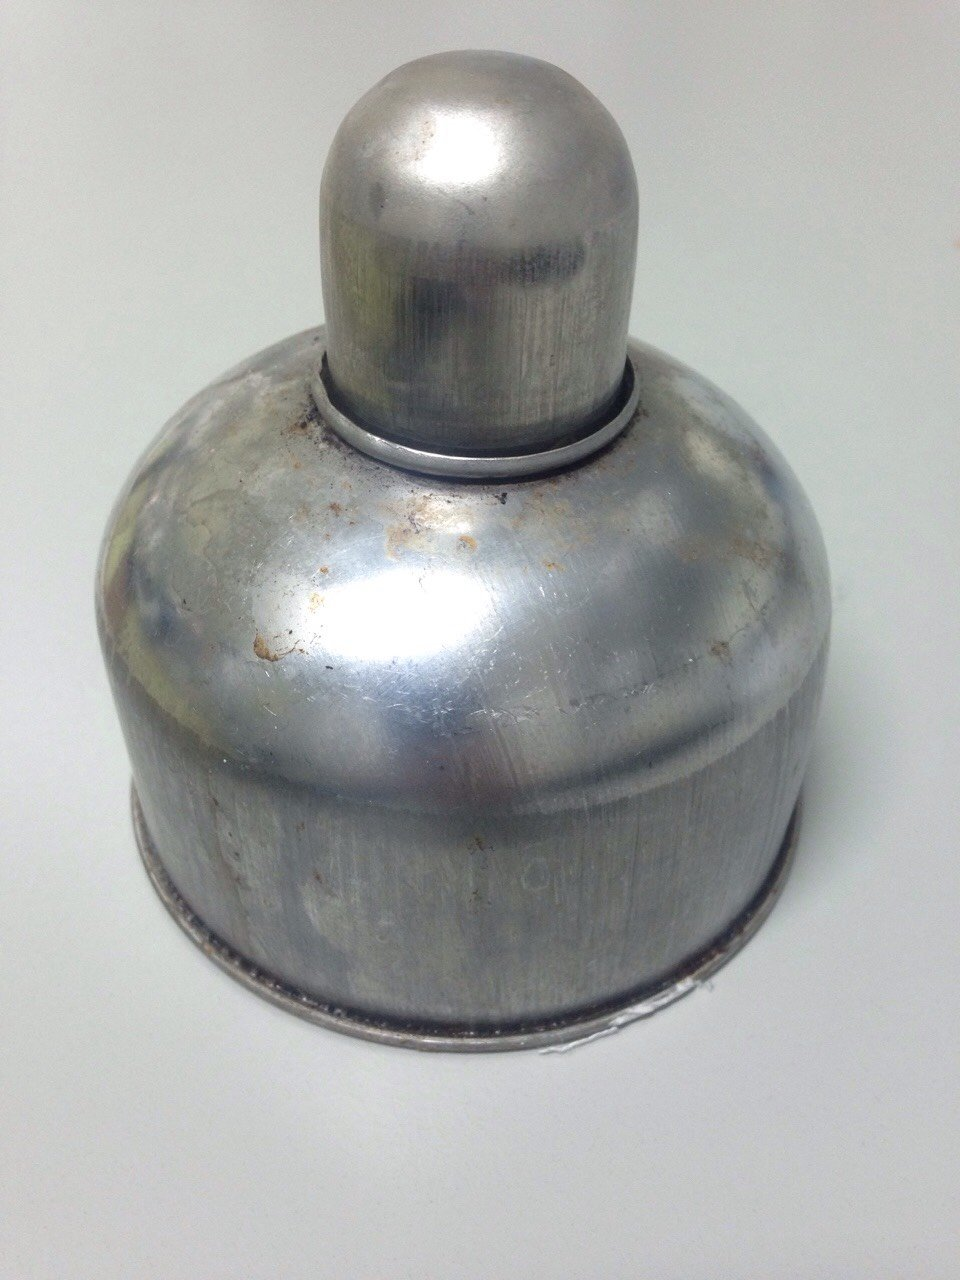 Alcohol burner - Wikipedia for alcohol lamp laboratory apparatus  165jwn